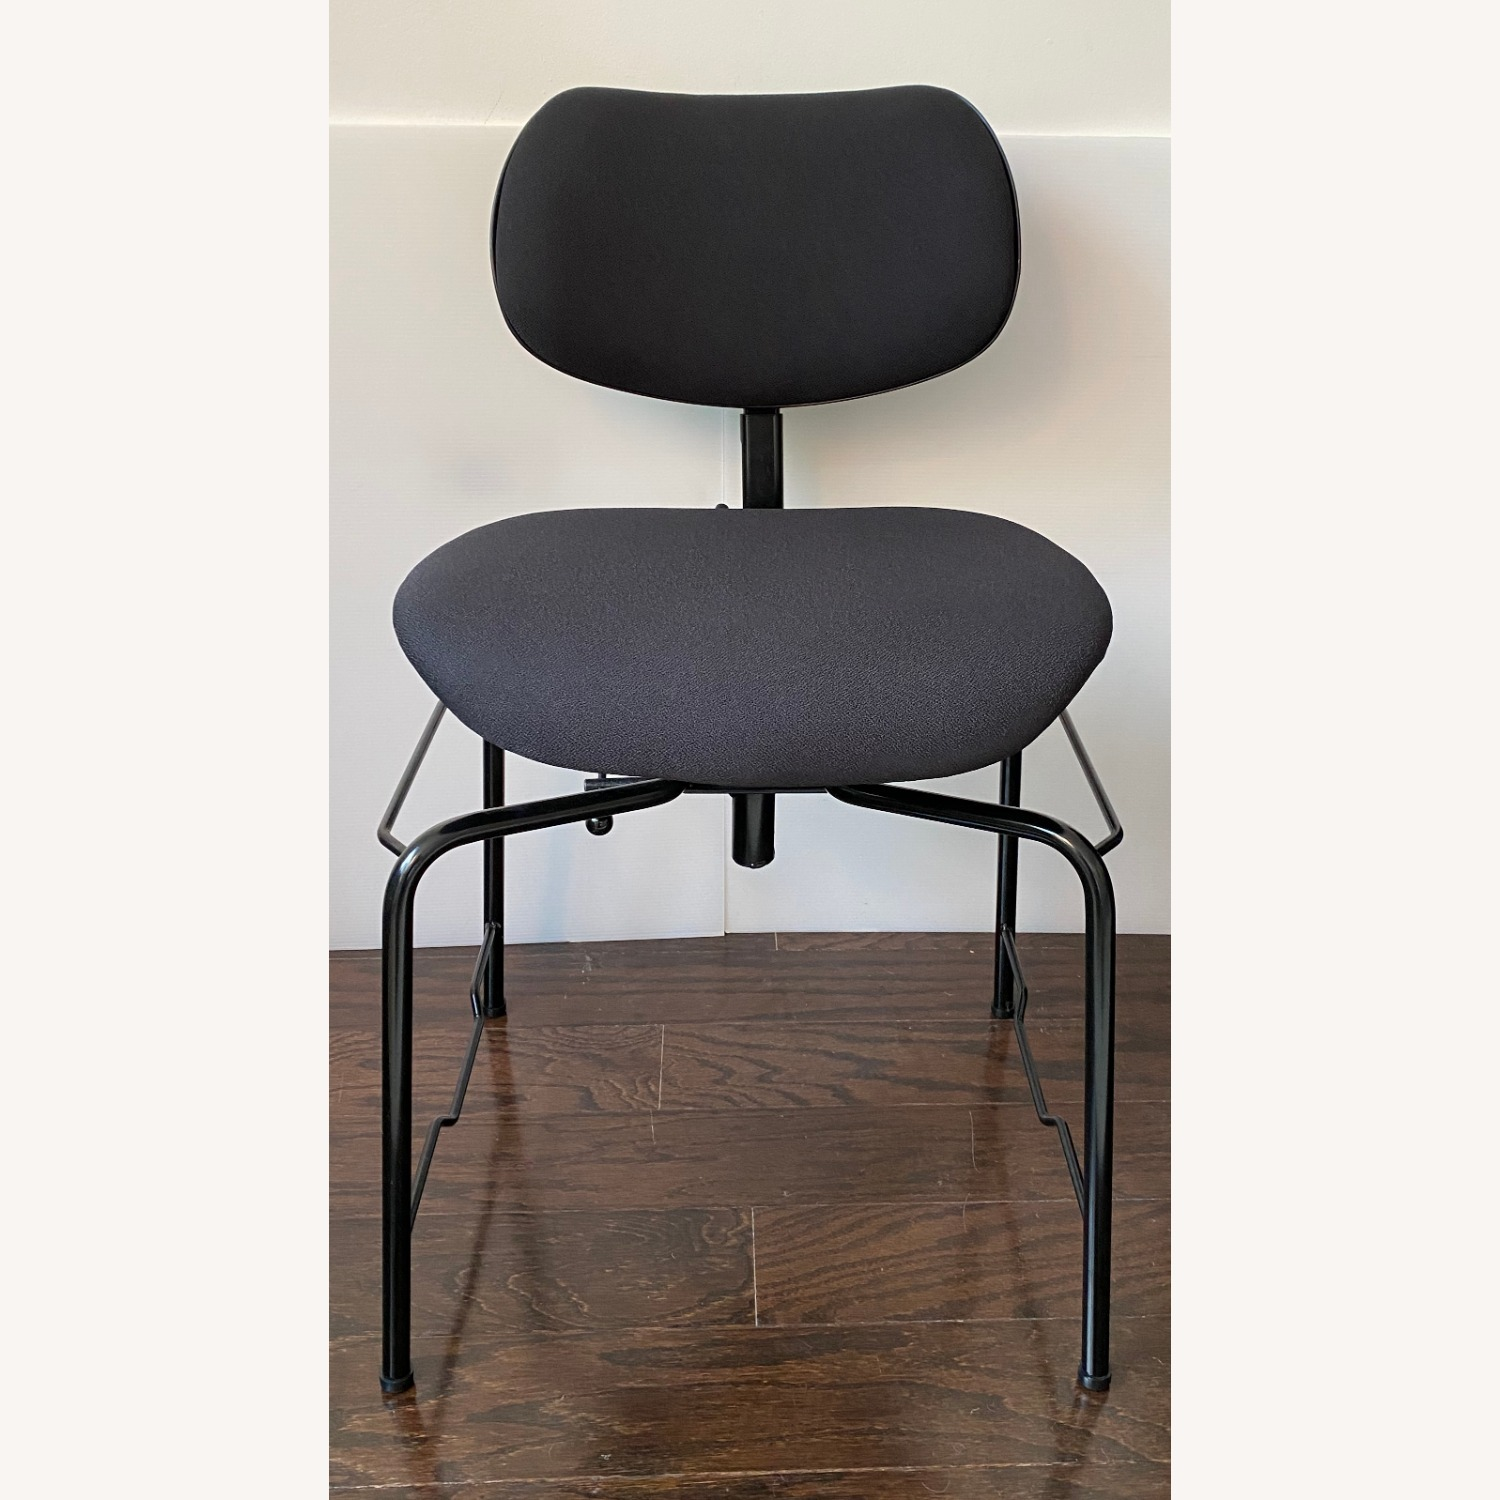 "Wilde + Spieth ""Orchestra"" Chair Black - image-14"